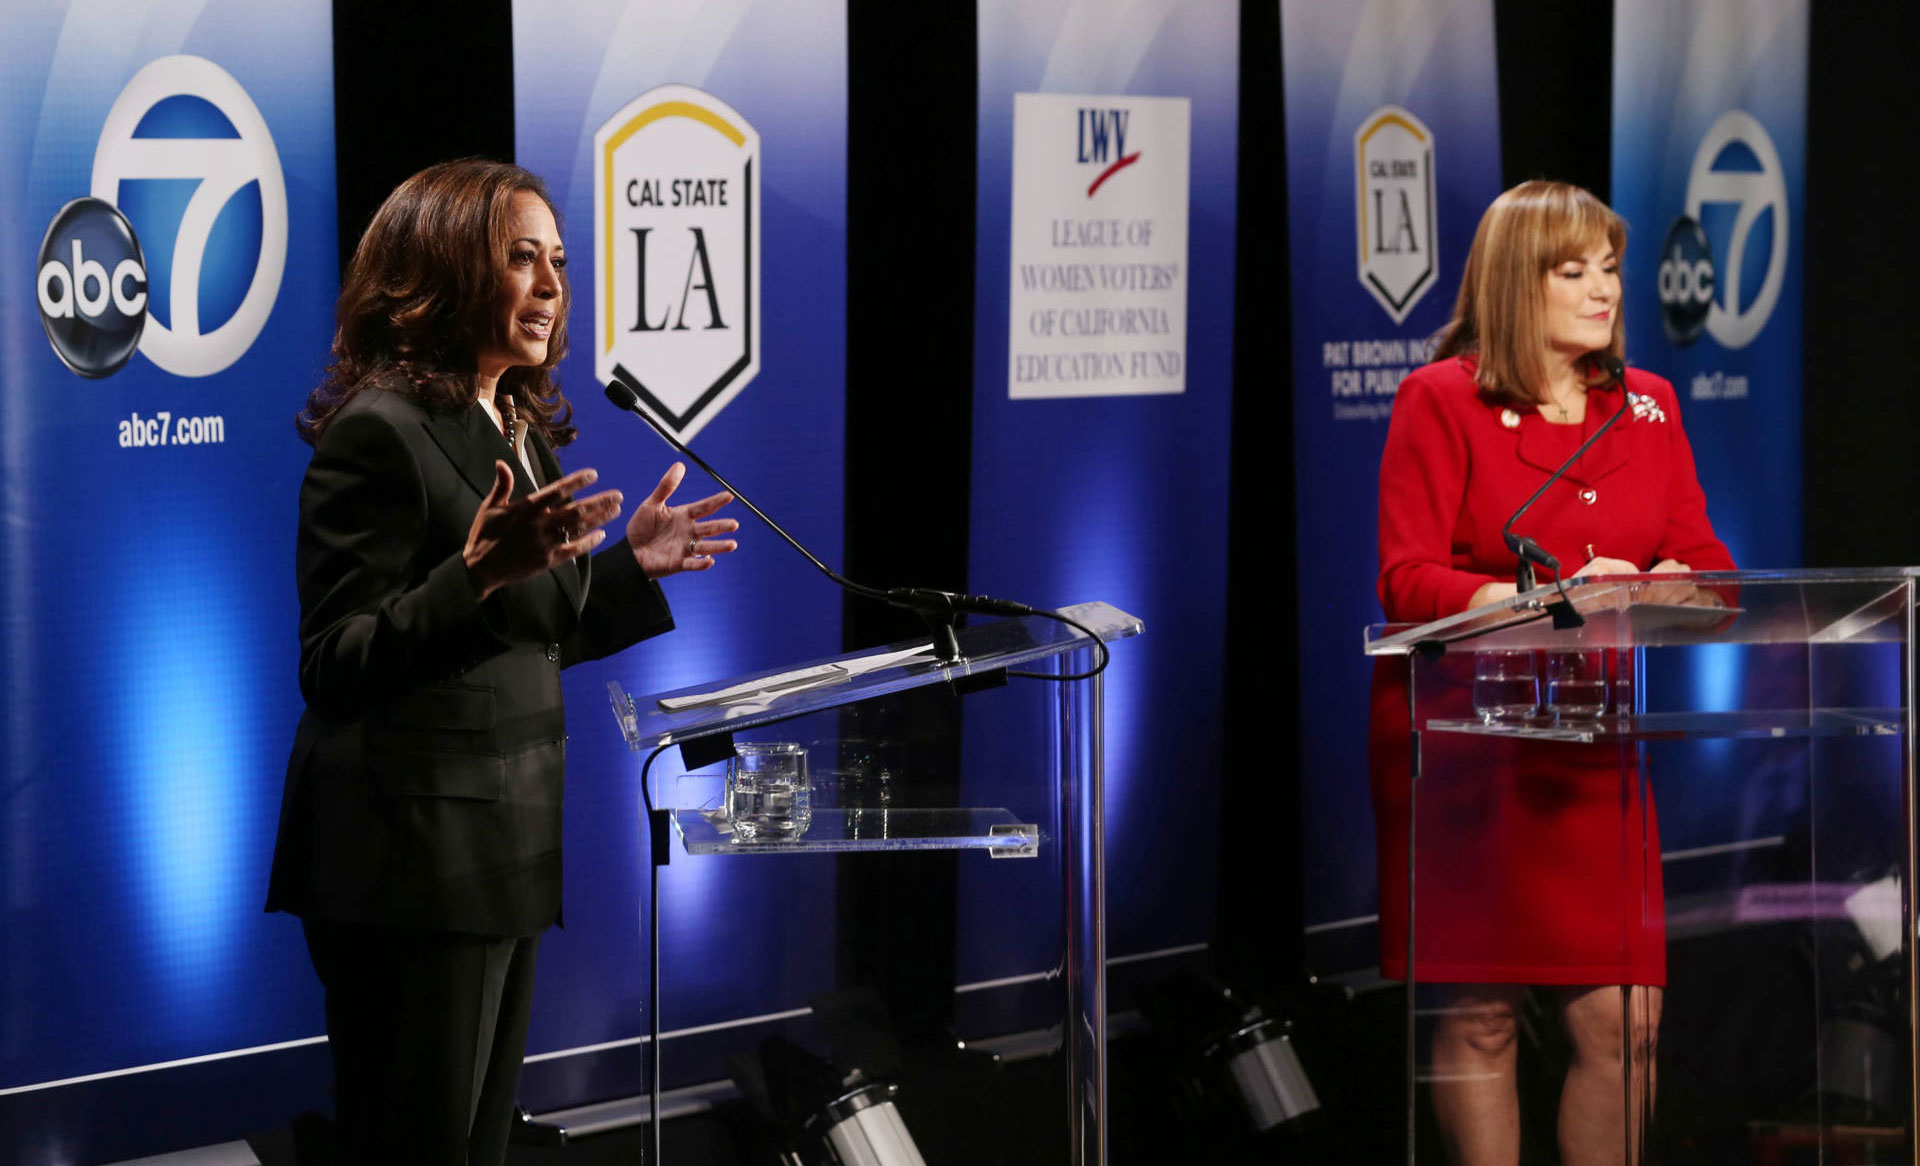 California Attorney General Kamala Harris (L) and Orange County Rep. Loretta Sanchez debate at Cal State L.A. on October 5, 2016.